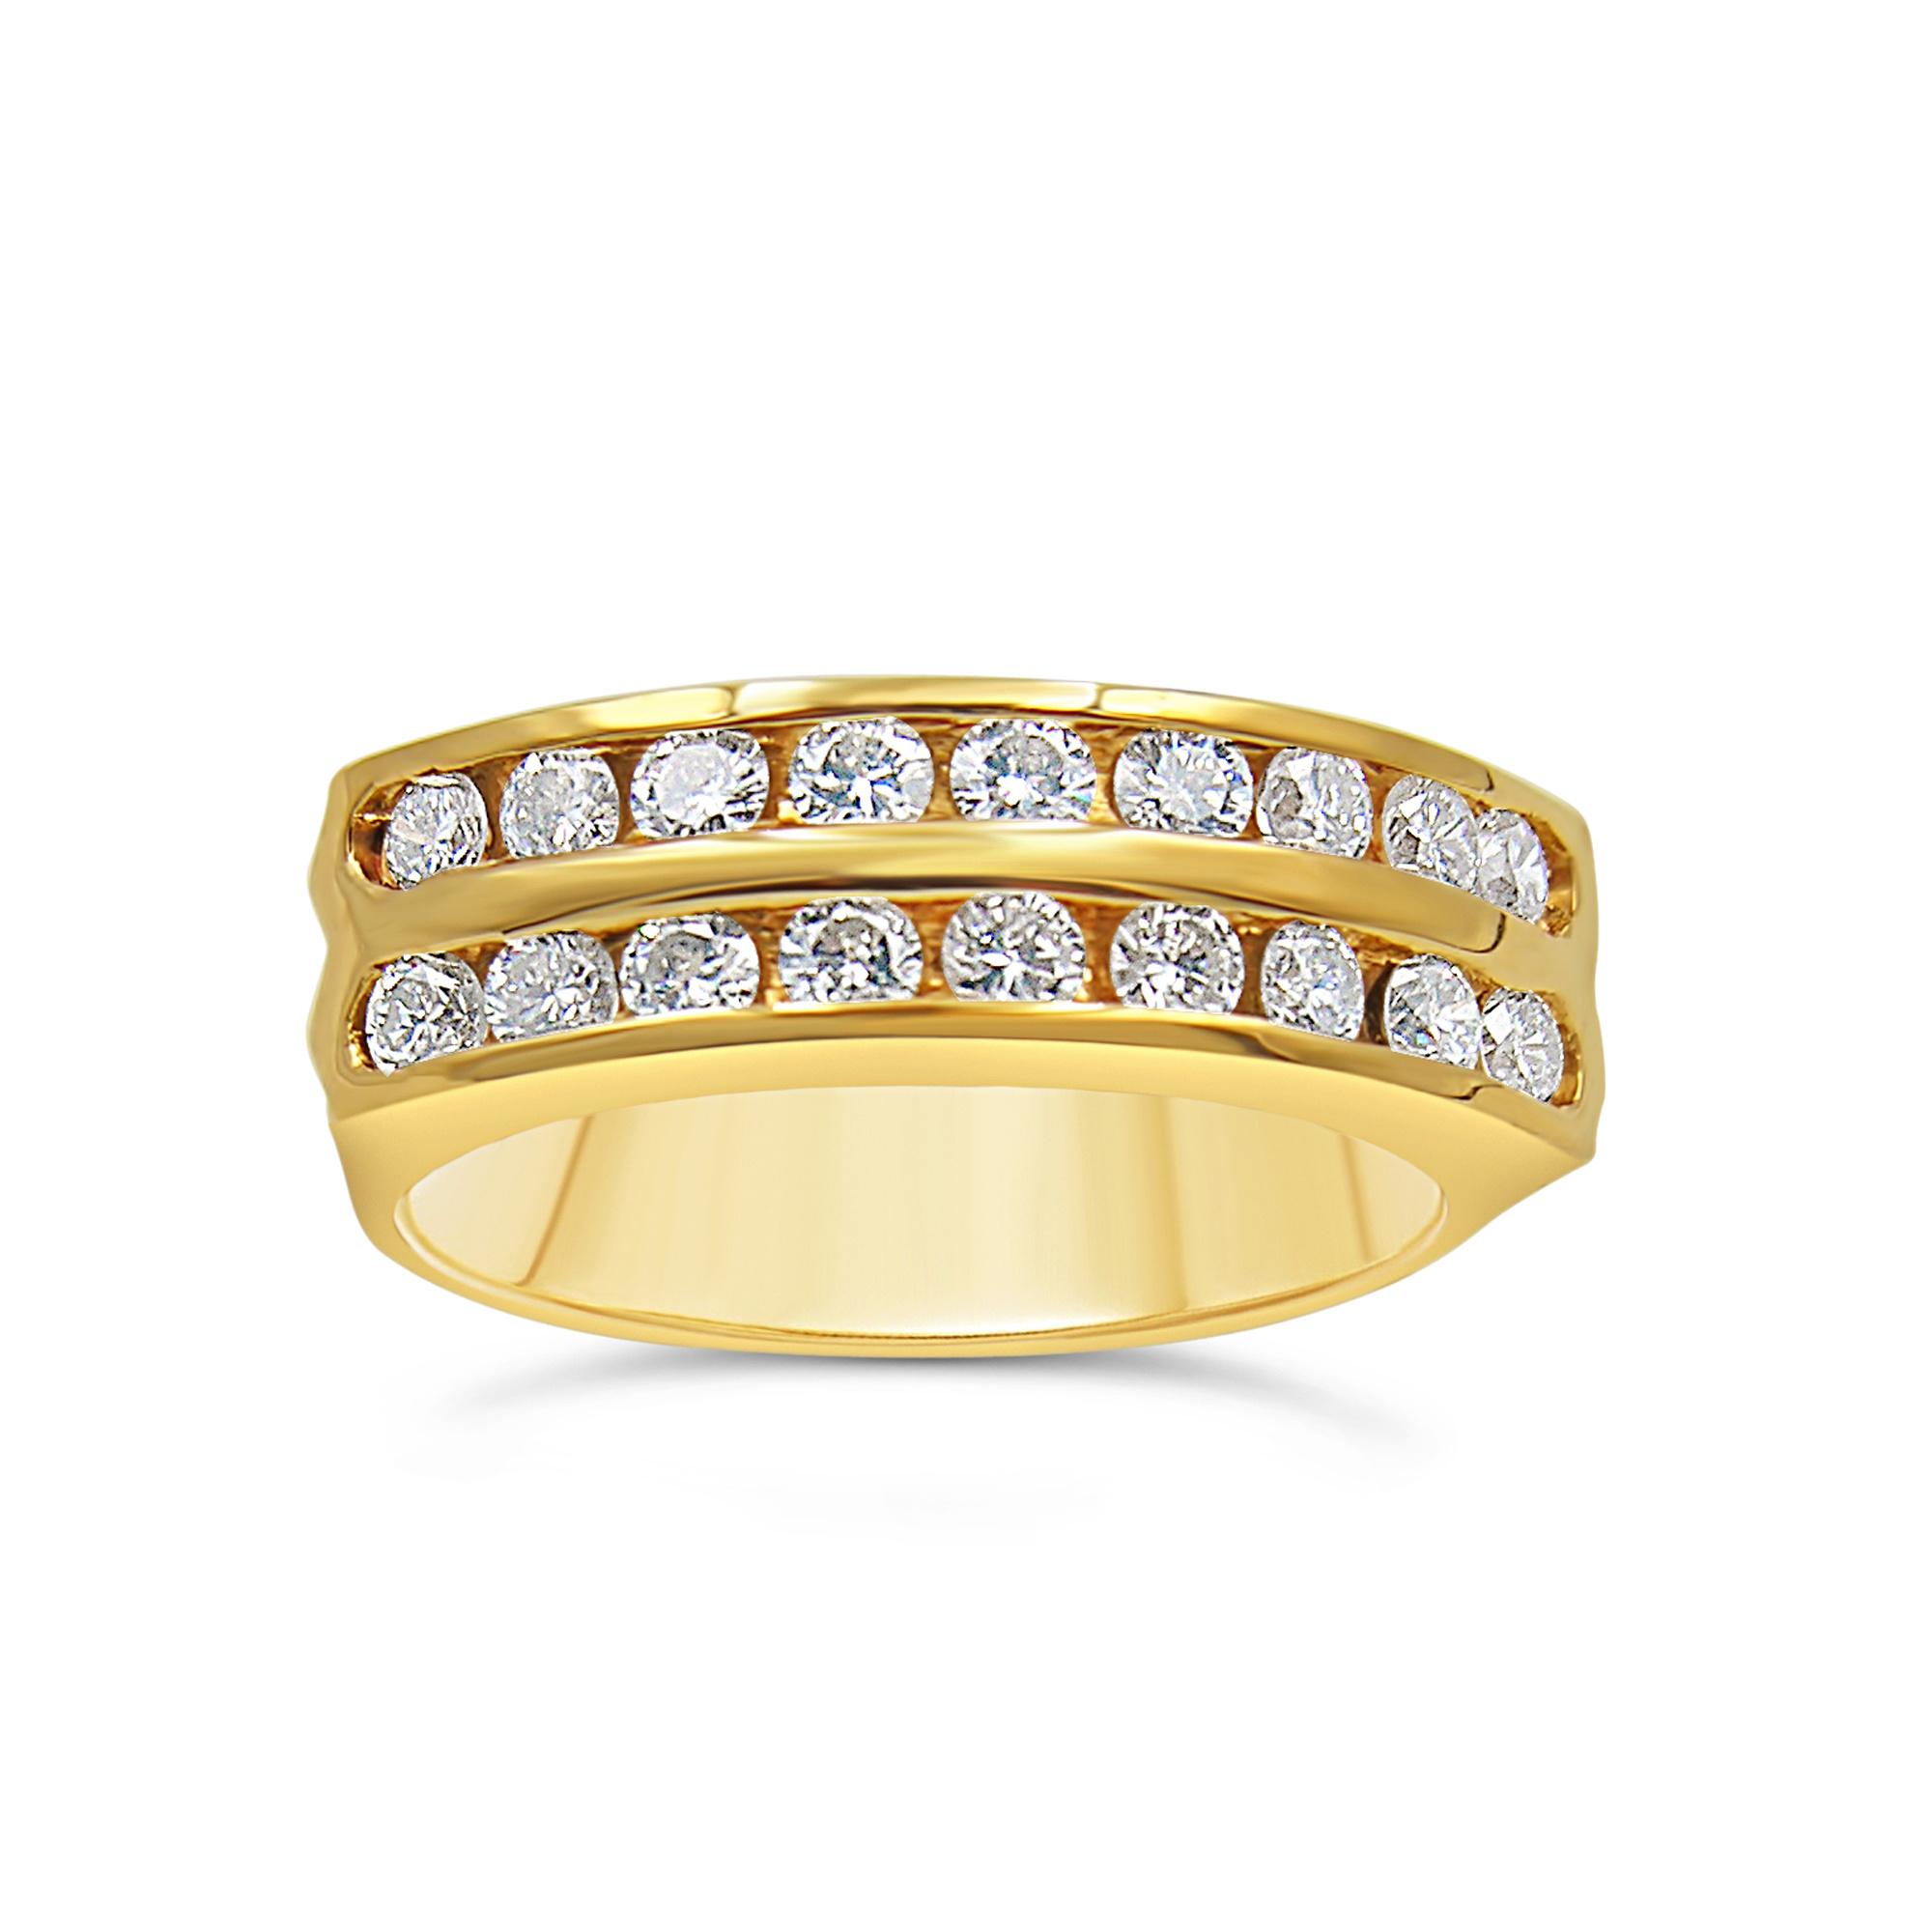 18k yellow gold ring with 0.70 ct diamonds